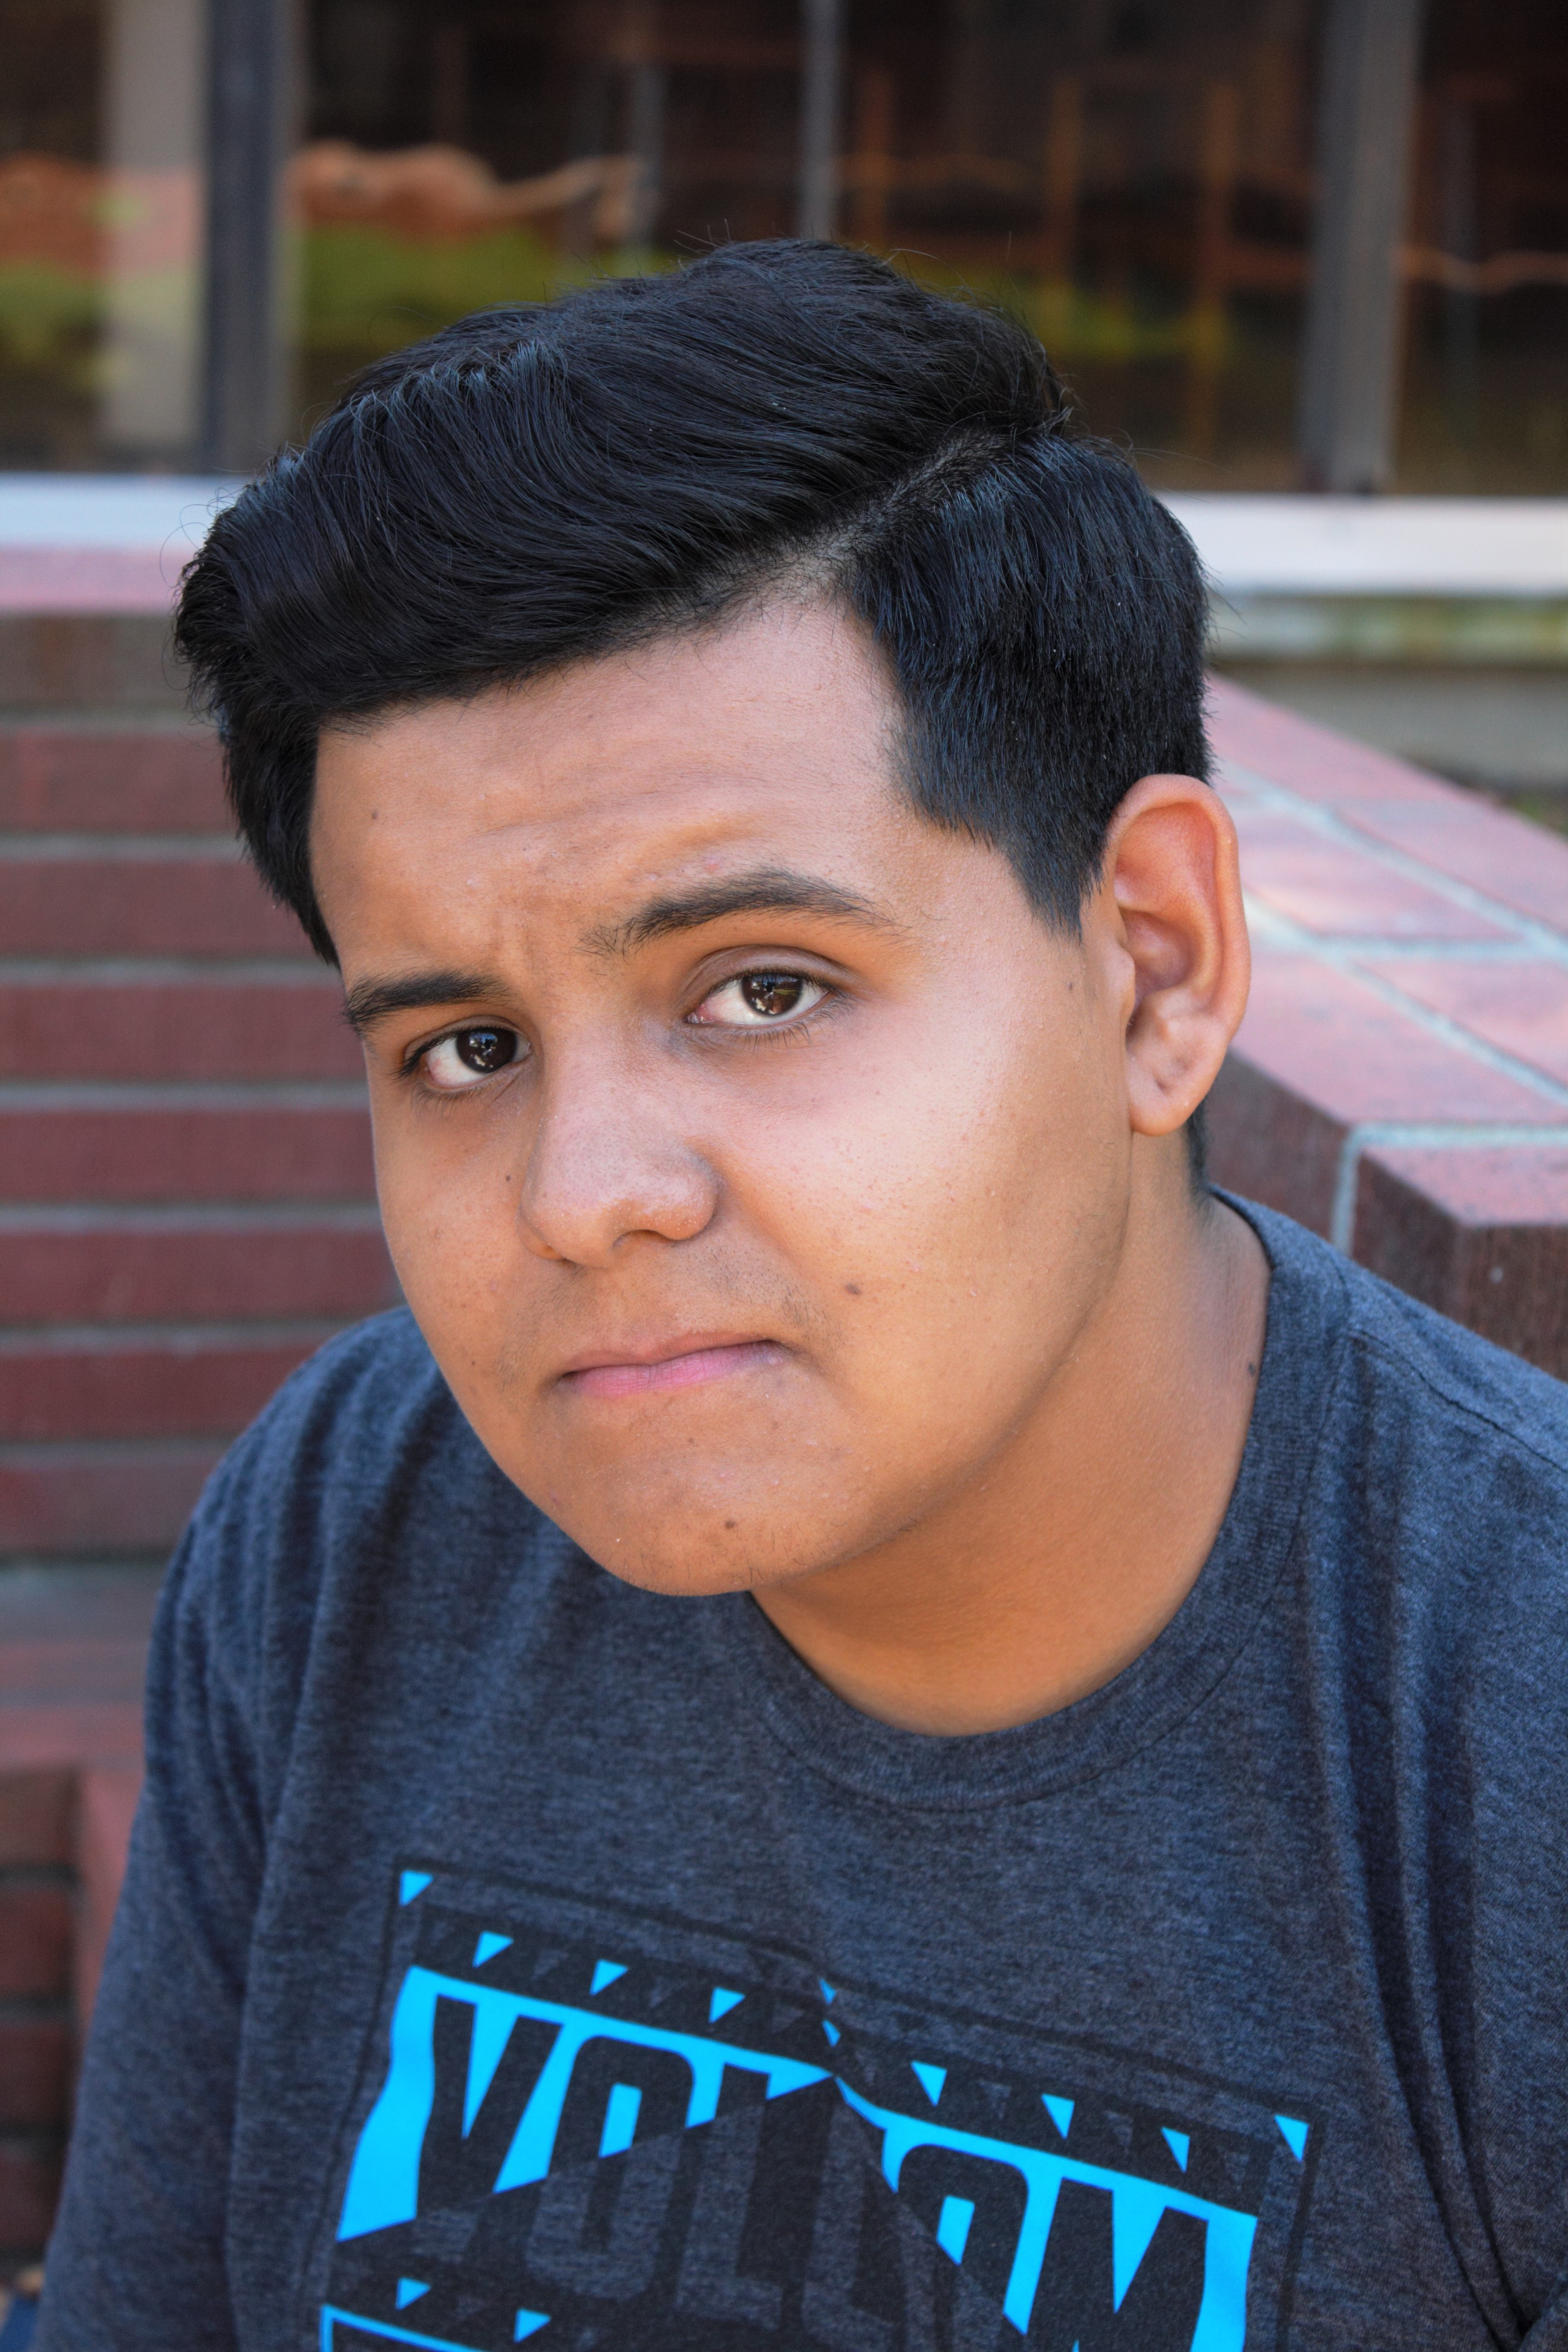 Ricardo Sandoval, 19, Engineering Major, tells us his inspirations, accomplishments, regrets, and plans in this series of People of El Camino on Wednesday Oct. 5. Photo credit: Alain Miranda